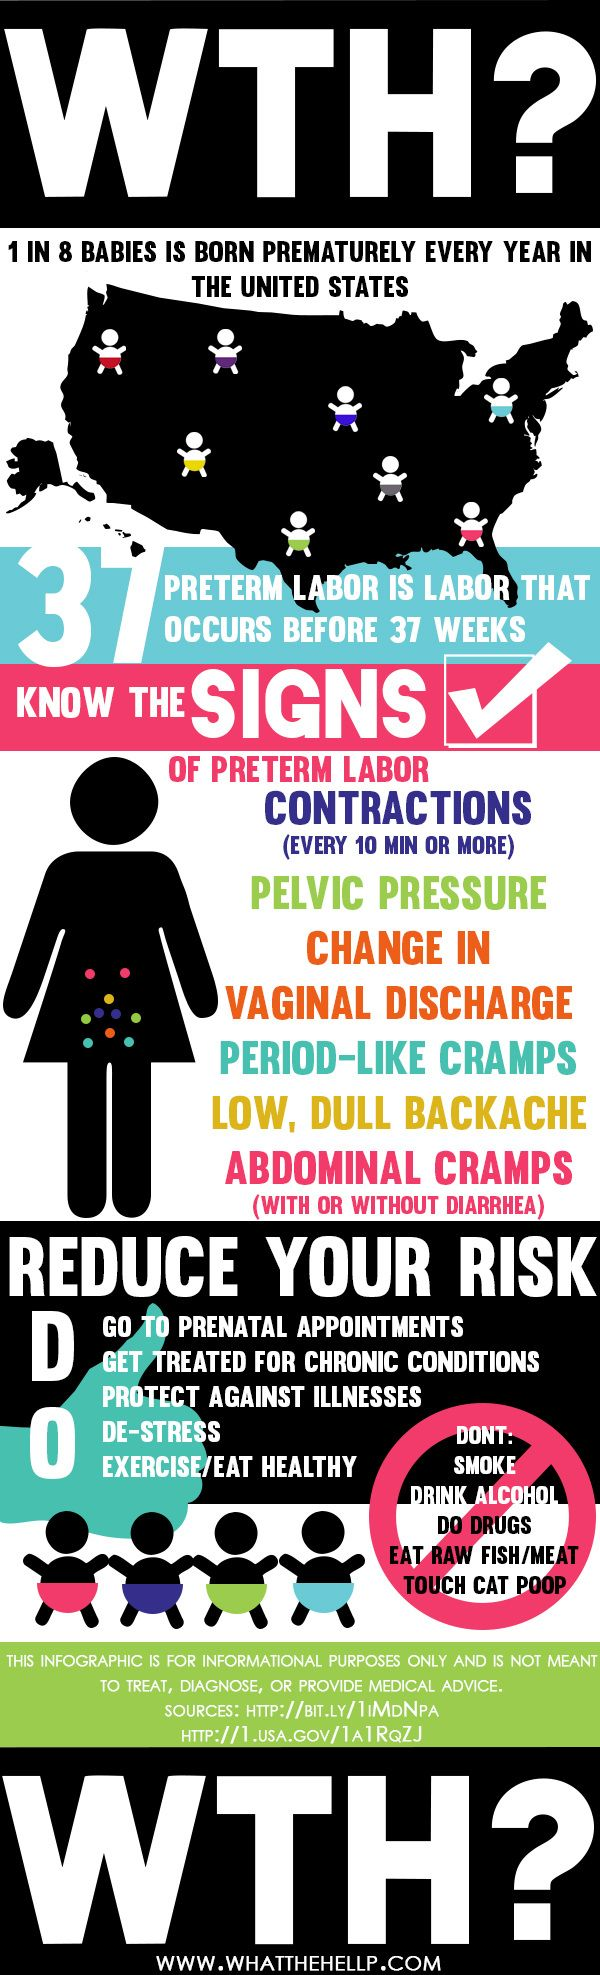 Preterm babies and labor signs infographic from www.whatthehellp.com #pregnany #preterm